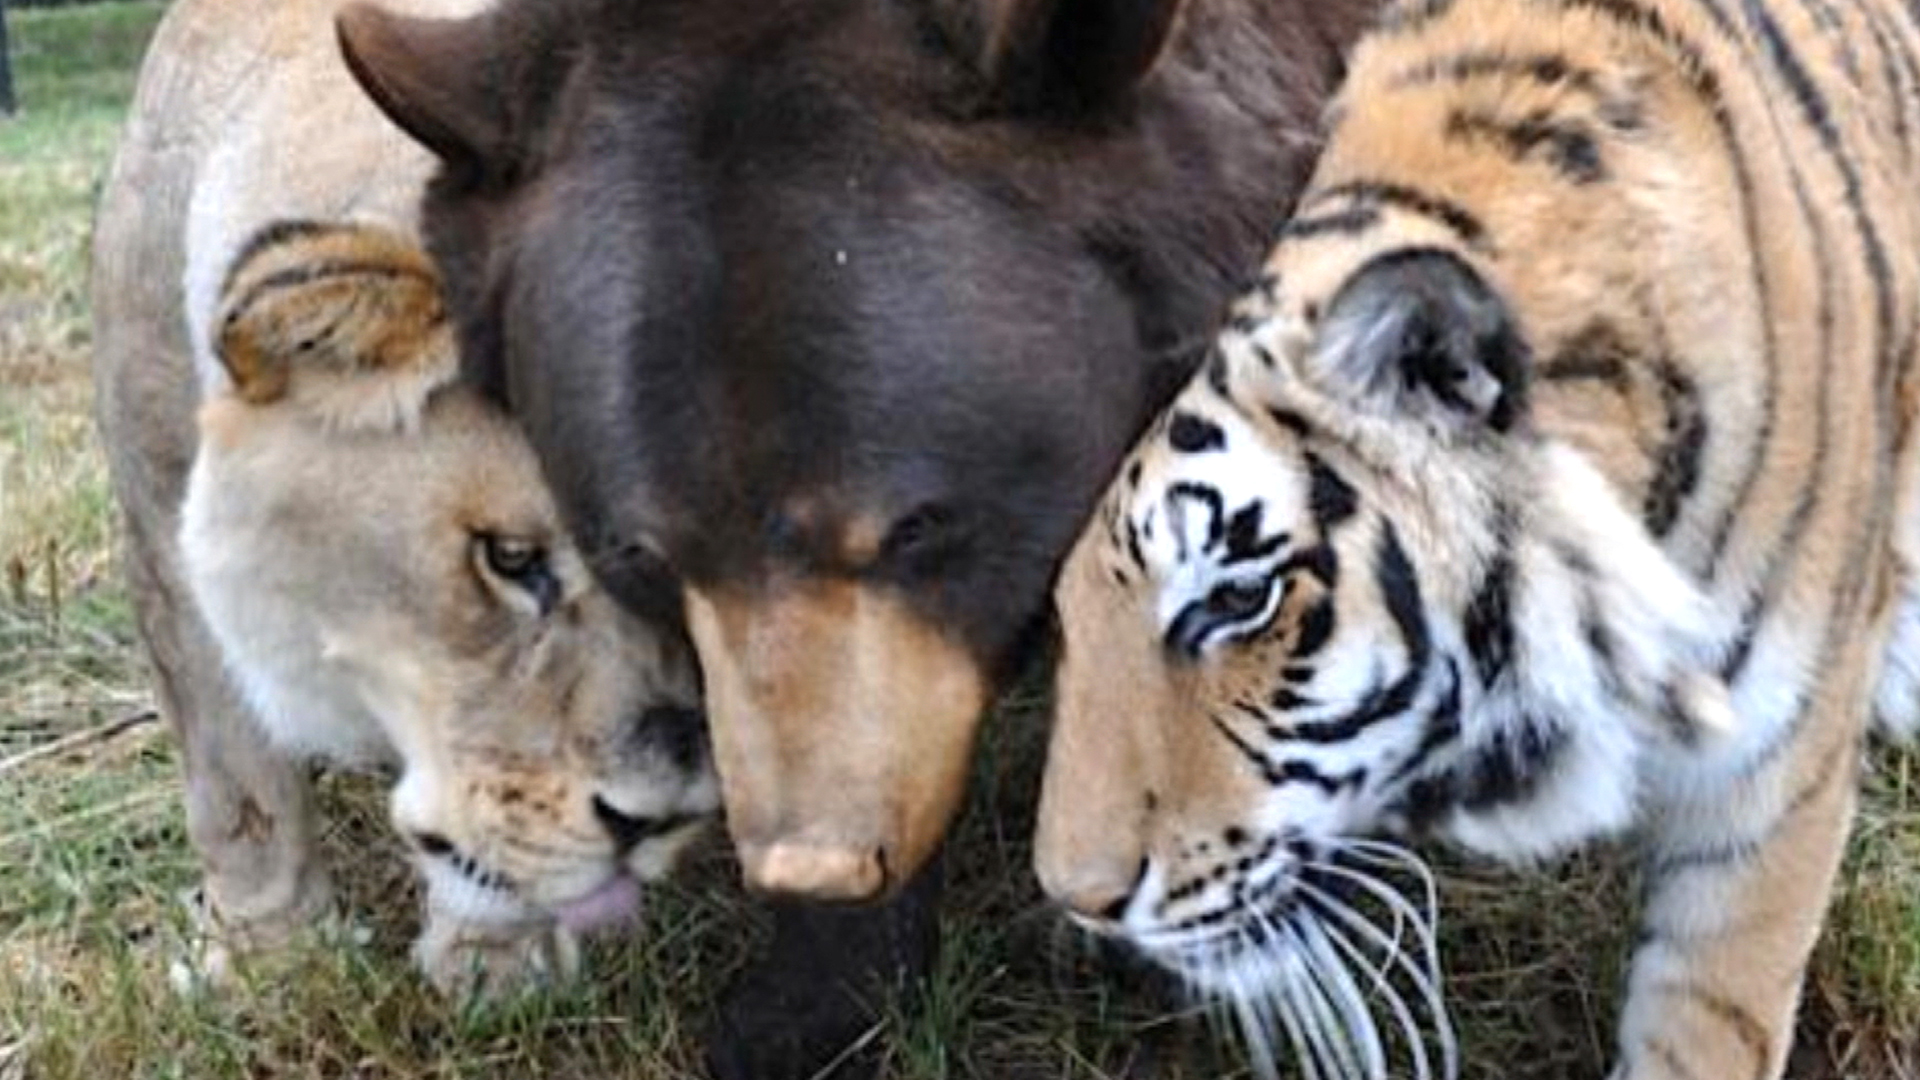 They teach you how to love': Meet the lion, tiger and bear who are ...